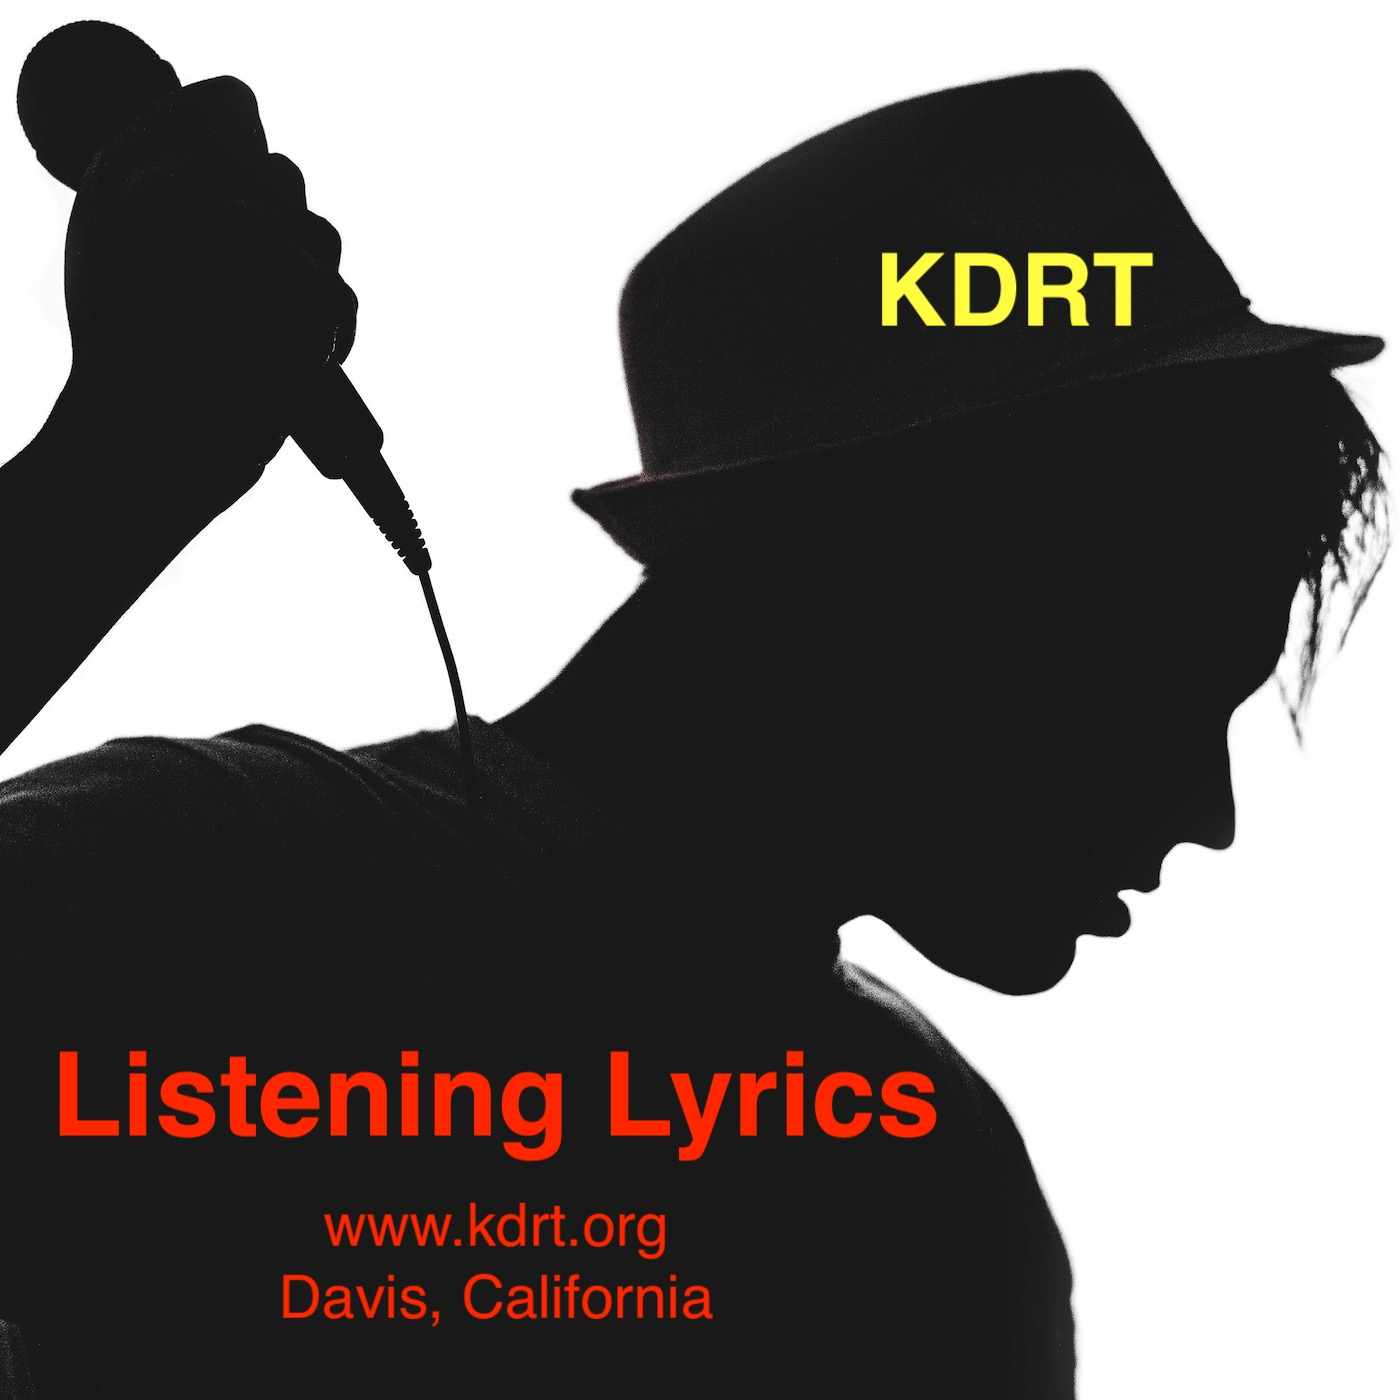 listening lyrics, kdrt ,pieter pastoor,